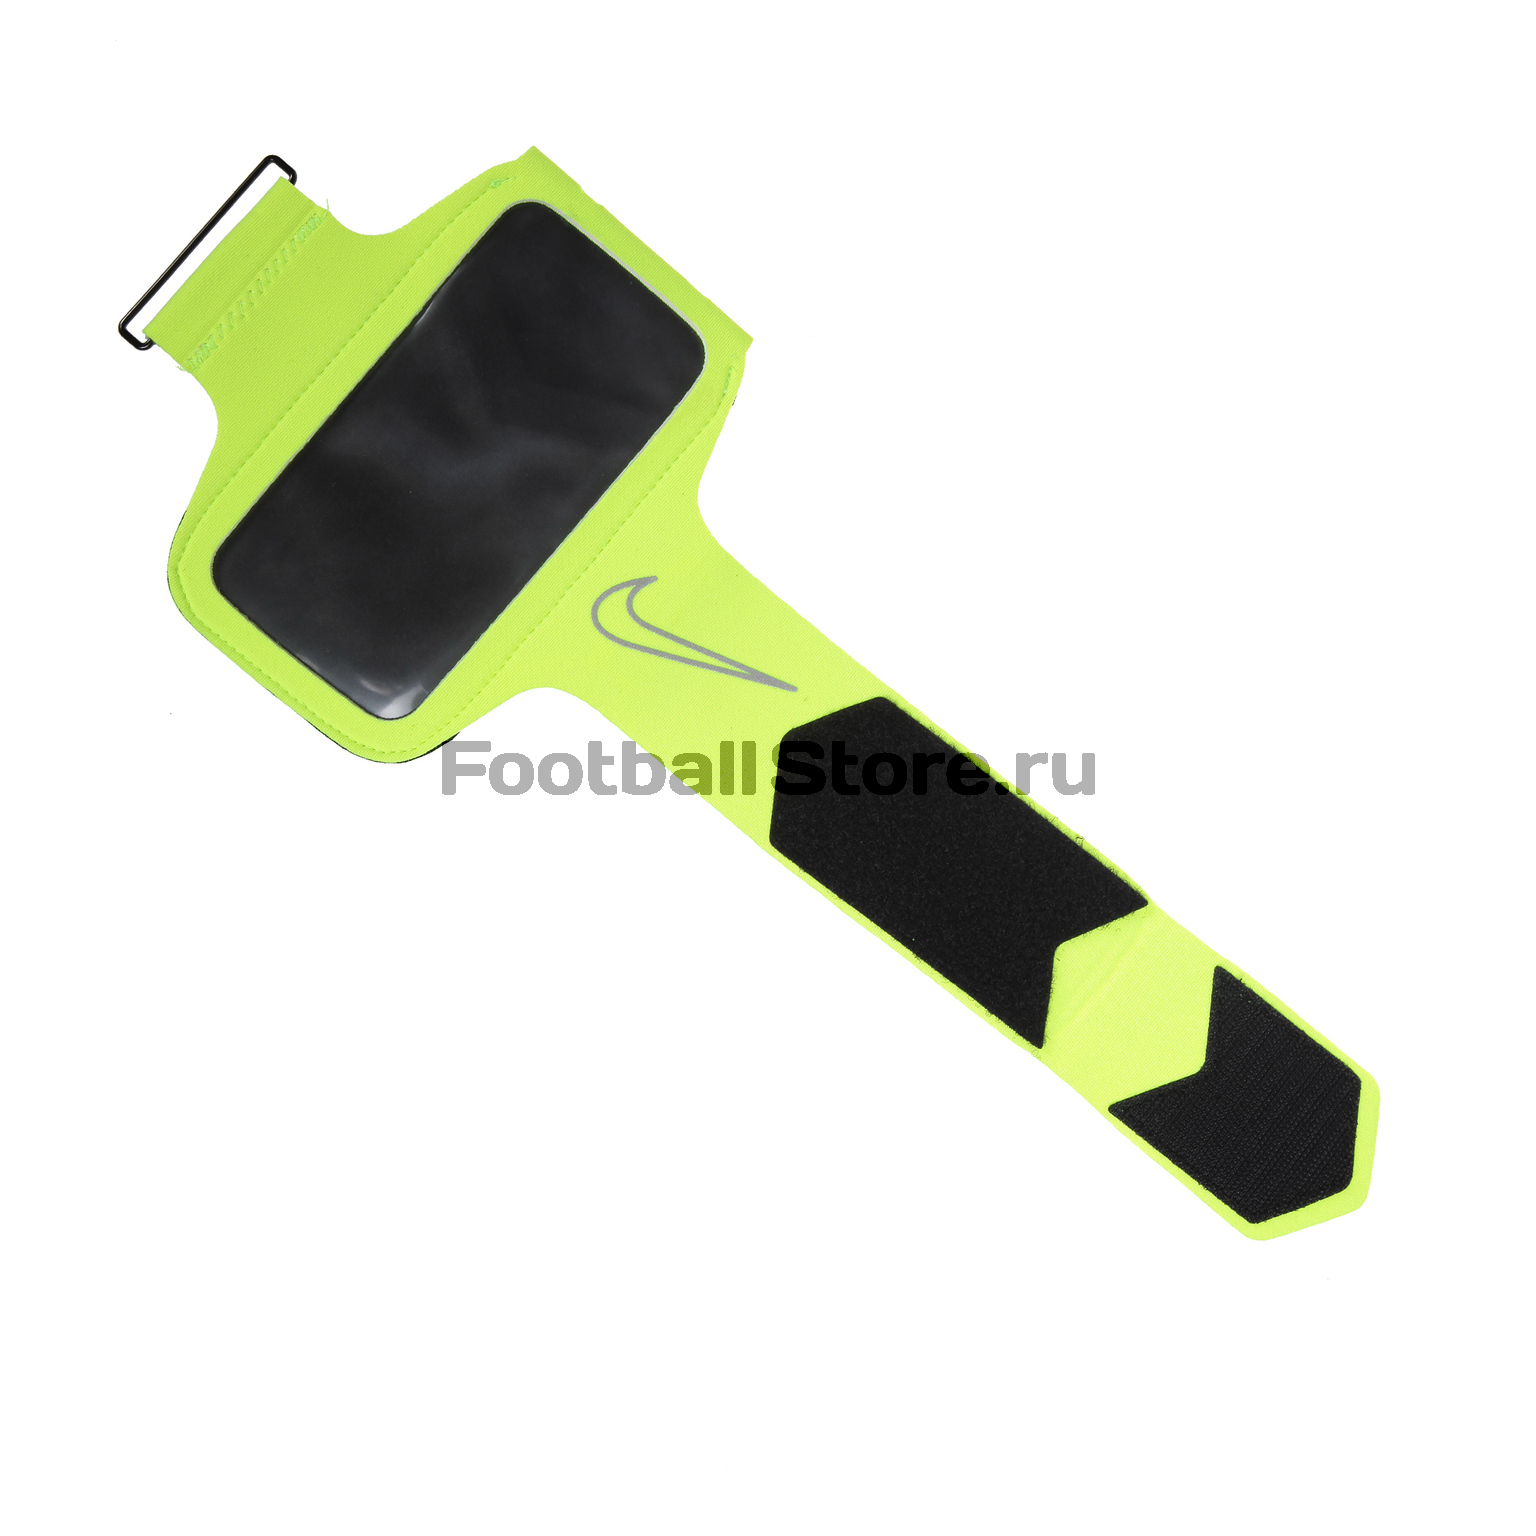 Чехол для Iphone 5/5S на руку Nike Lightweight Arm Band 2.0 N.RN.43.715.OS чехол для смартфона на руку nike lean arm band n rn 65 082 os